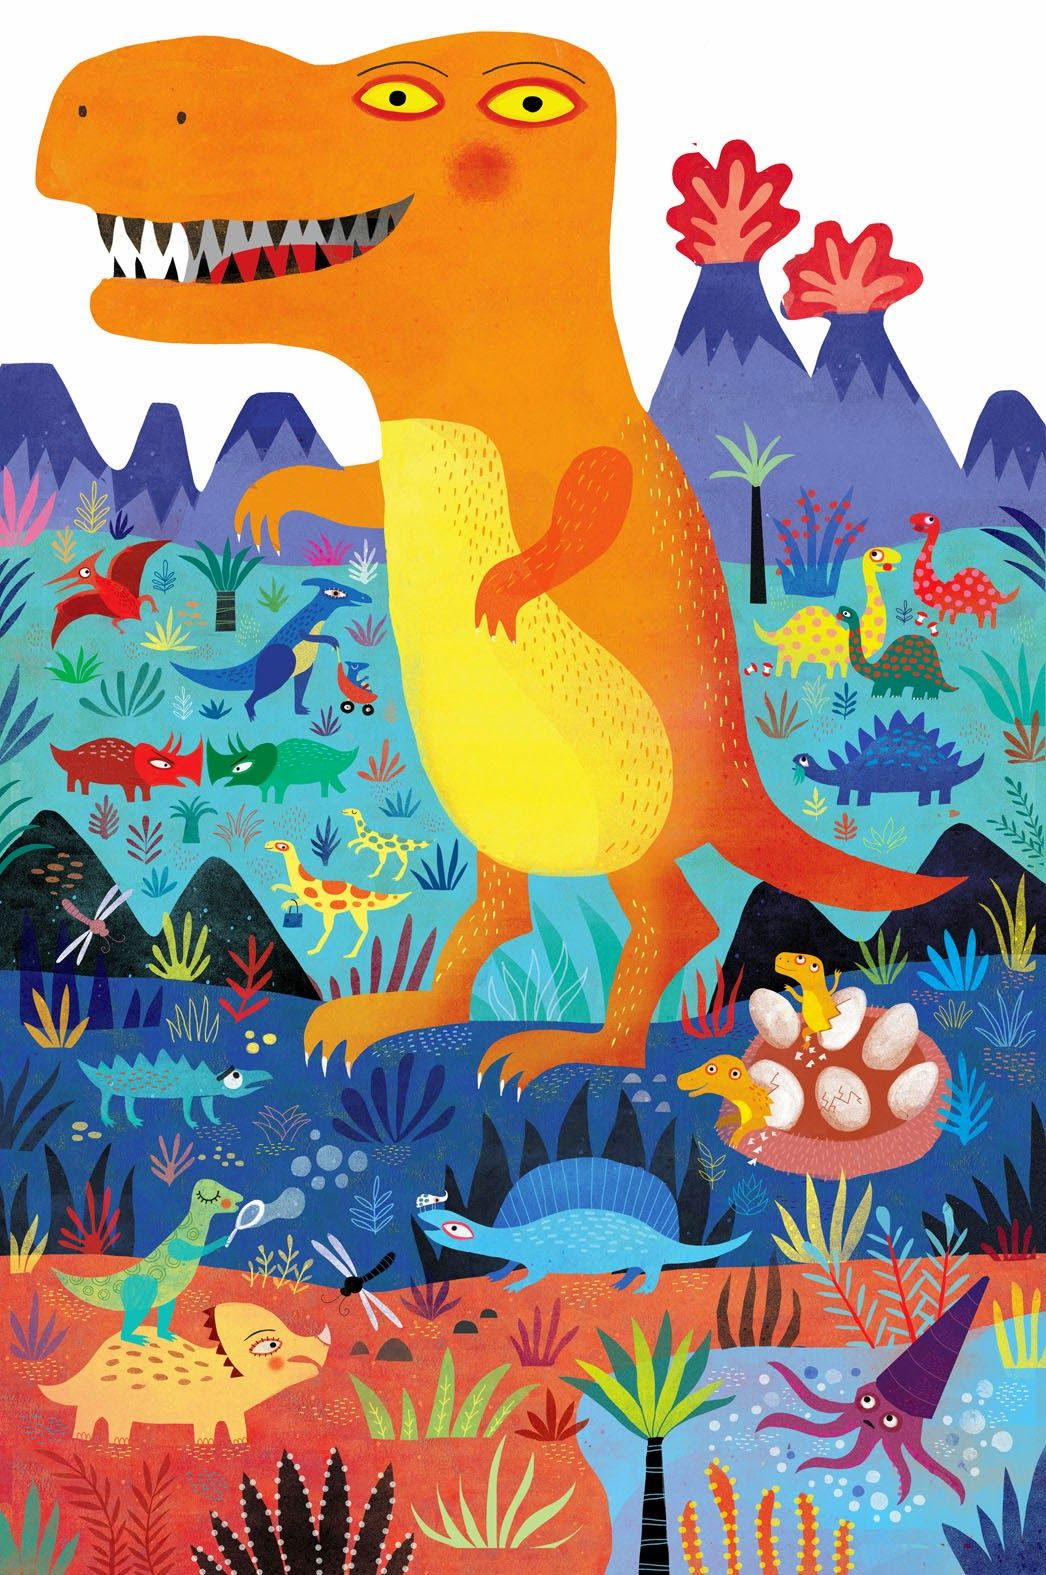 Mariana Ruiz Johnson Illustrations #dinosaurillustration